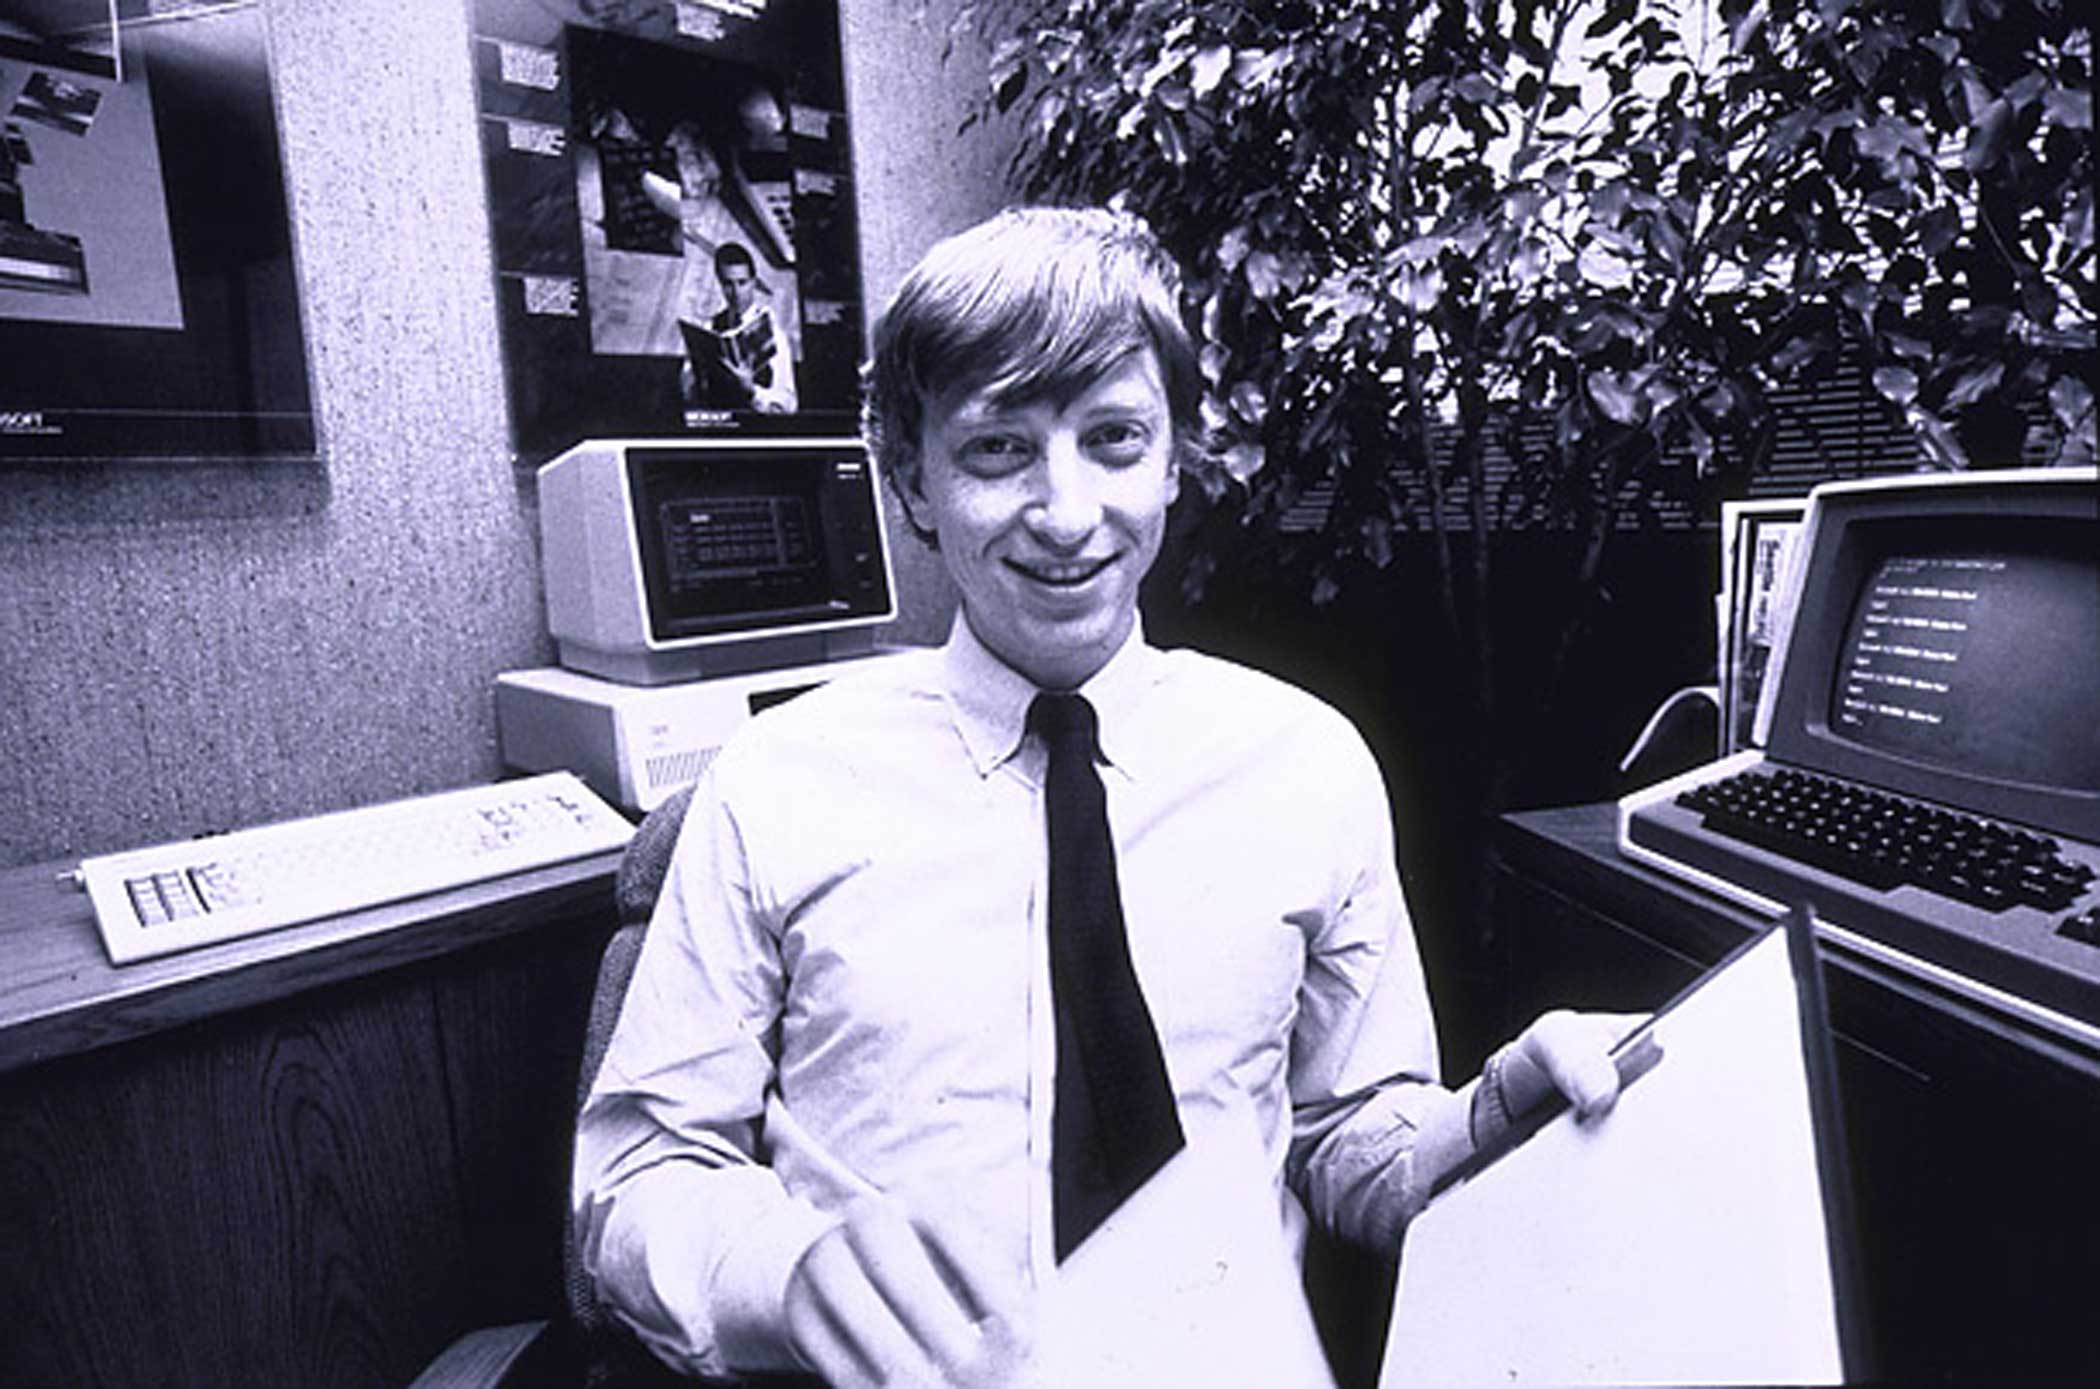 Bill Gates, about 27, in his Microsoft office in 1982.